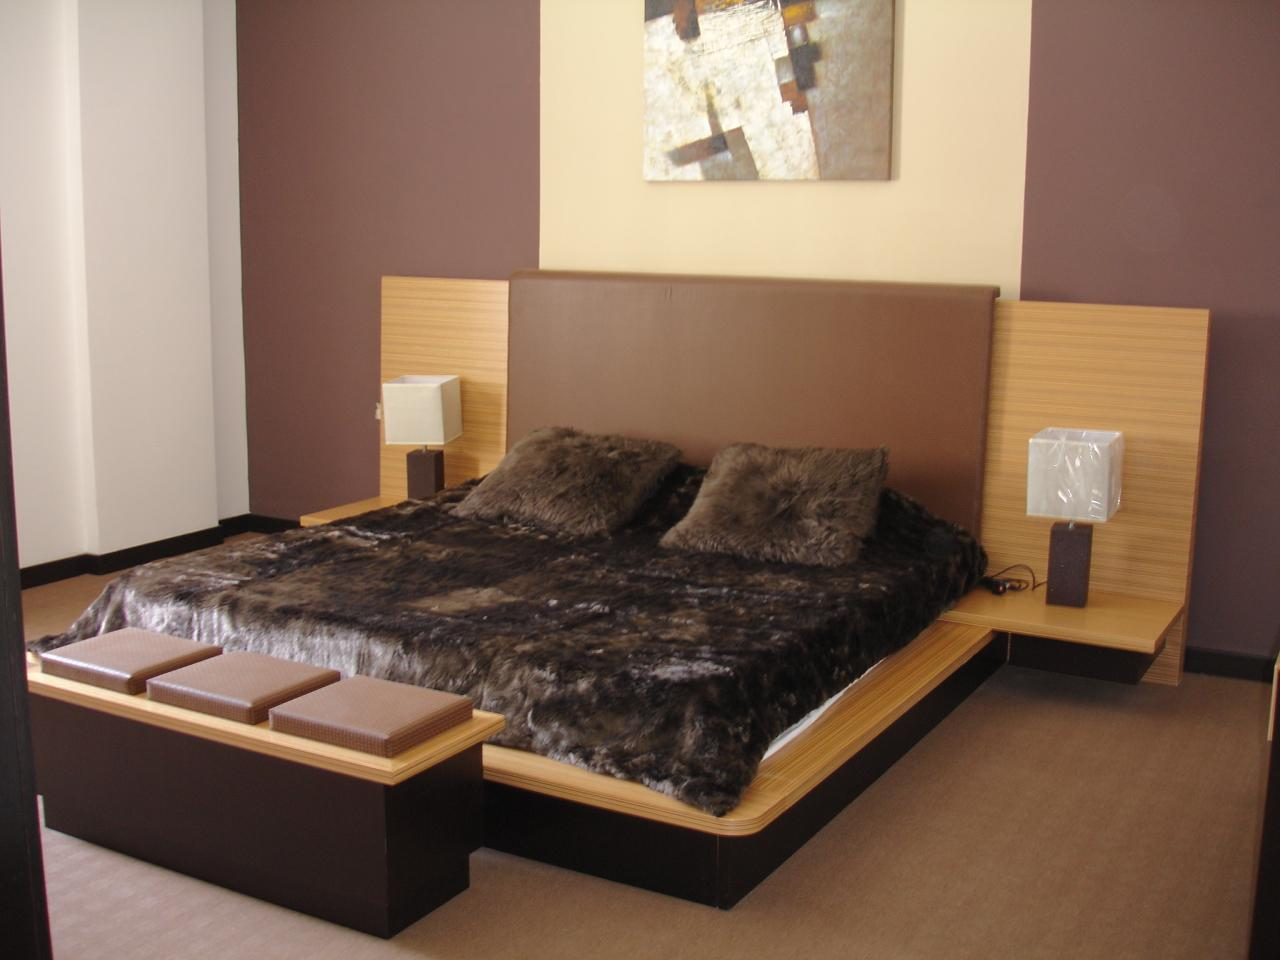 Japanese interior design ideas for your bedroom